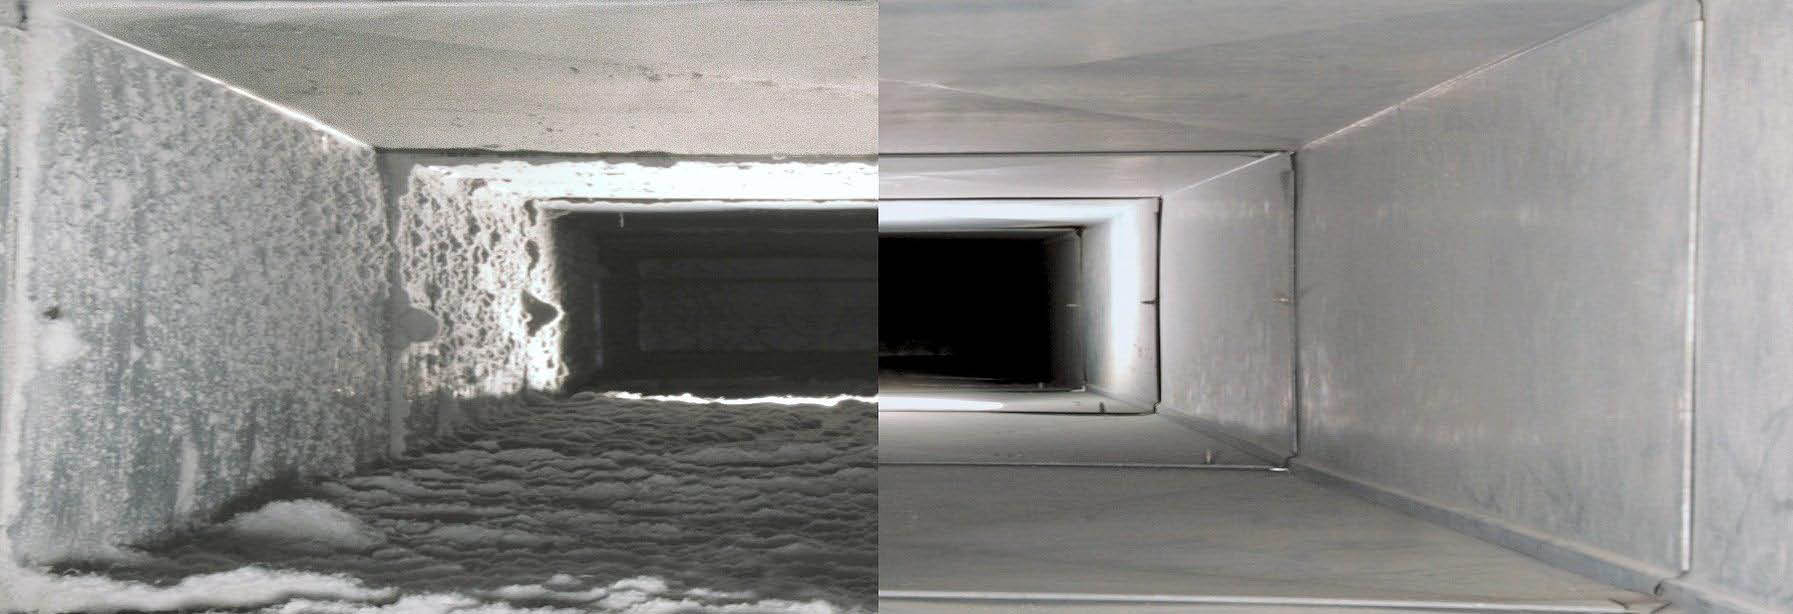 Minnesota, air duct, clean, cleaning, carpet, chimney, dryer vent, furnace, access panel, home, MN